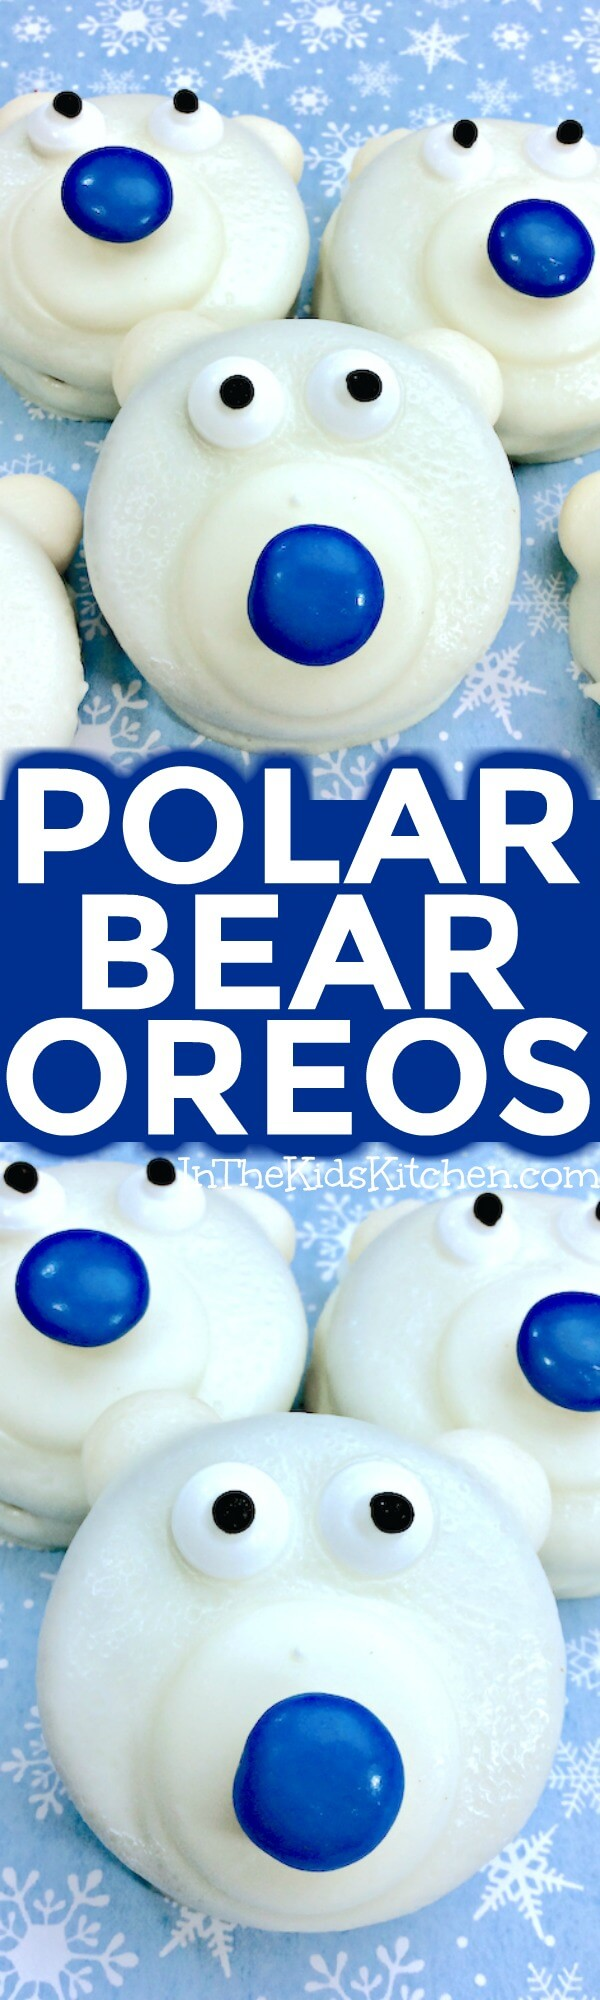 Polar Bear Cookies are a frozen fun winter-themed kids treat or holiday party dessert! Easy chocolate dipped recipe to make with kids of all ages.